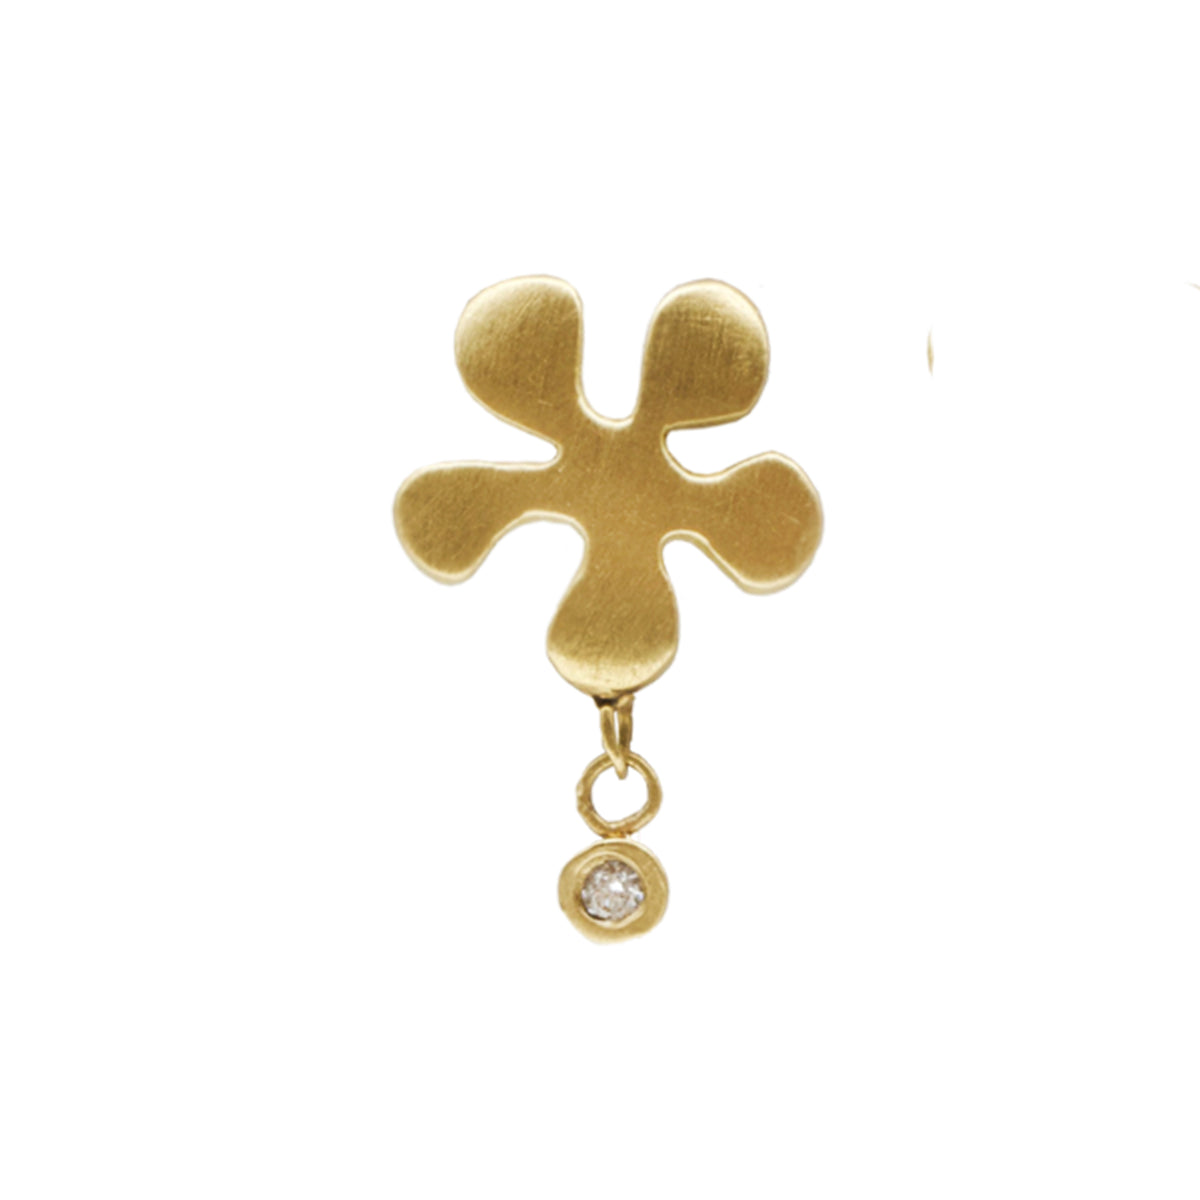 Jenna Katz Diamond Sea Flower Earring